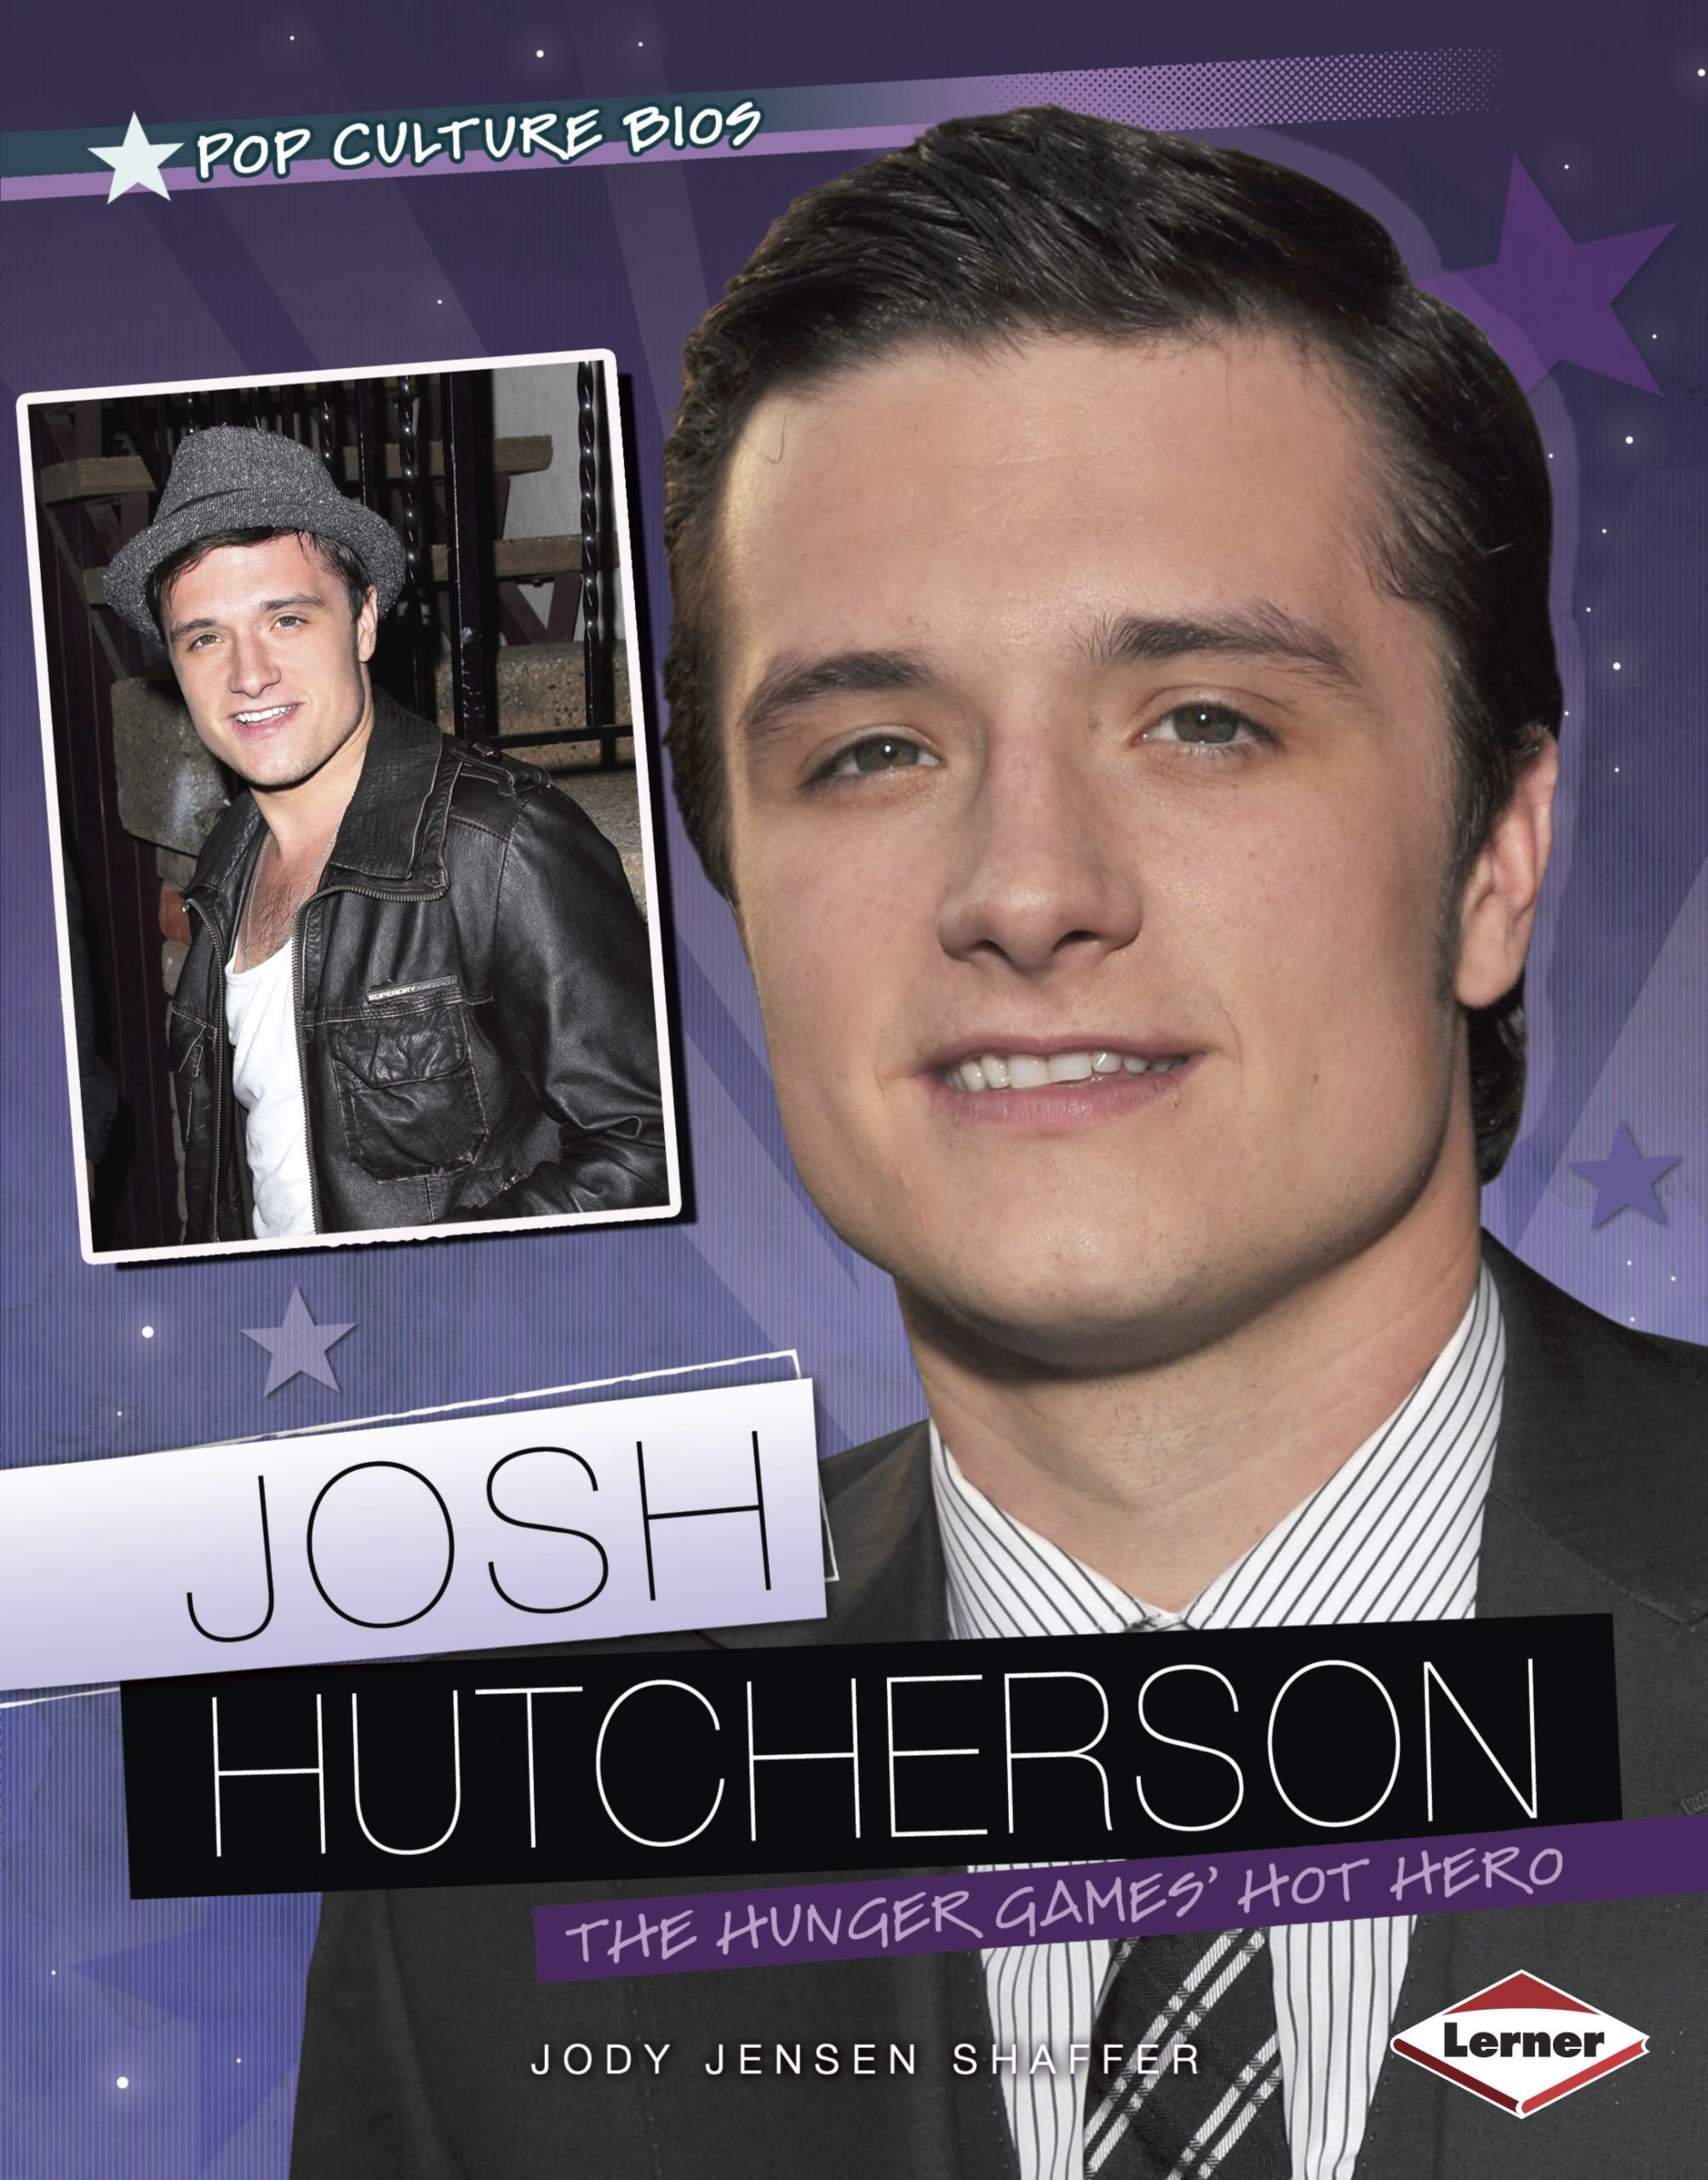 Josh Hutcherson: The Hunger Gamesúhot Hero (Pop Culture Bios: Action Movie Stars) PDF